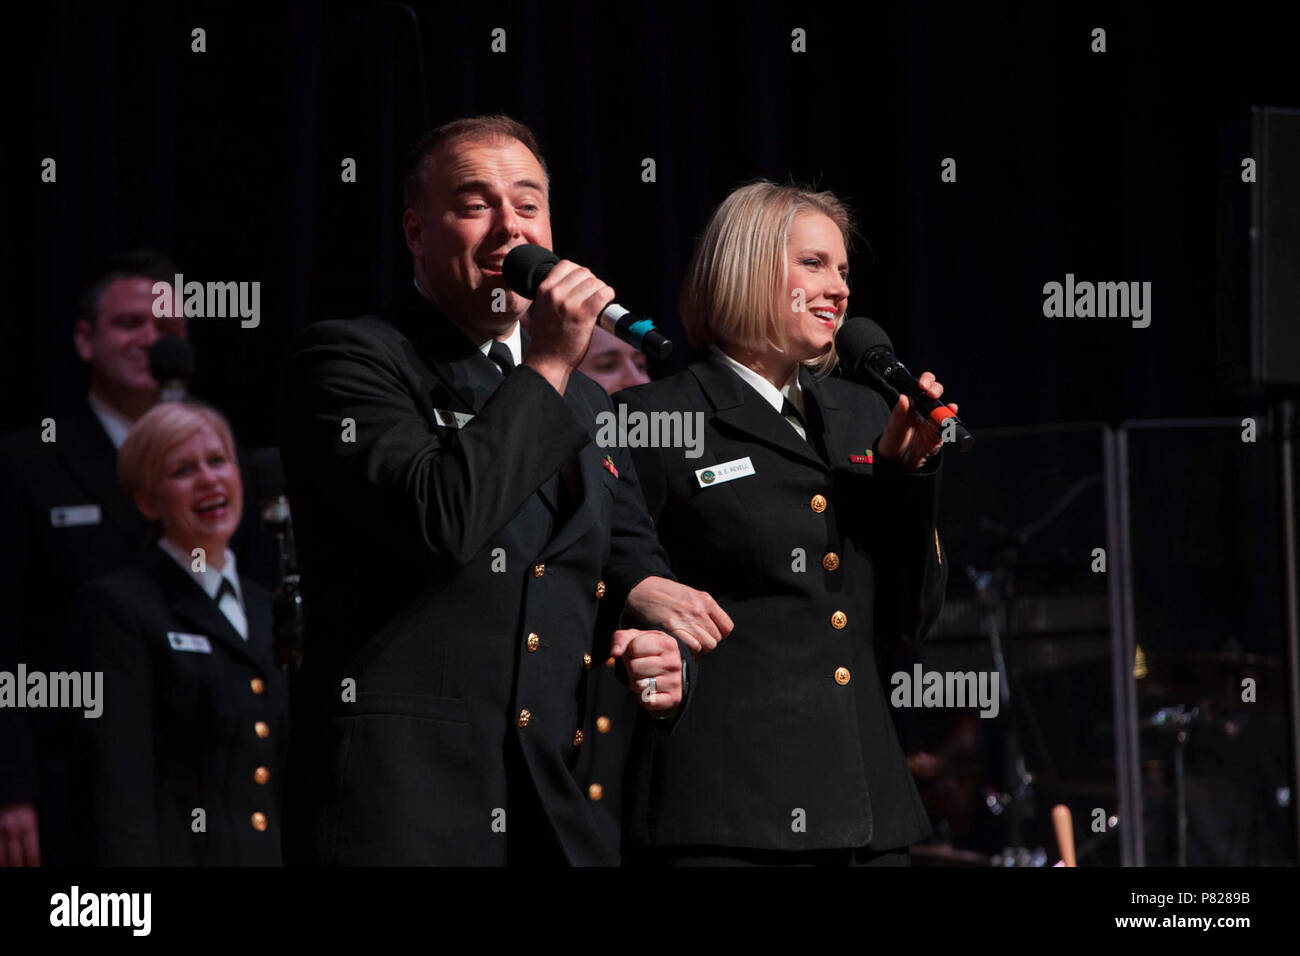 PHILLIPSBURG, N.J. (April 22, 2016) Musician 1st Class Michael Webb and Chief Musician Beth Revell sing the Sonny and Cher tune, 'I Got You Babe' as part of a medley of hits from the 1960s. The Sea Chanters are finishing up a 22-day tour of the northeastern United States. - Stock Image